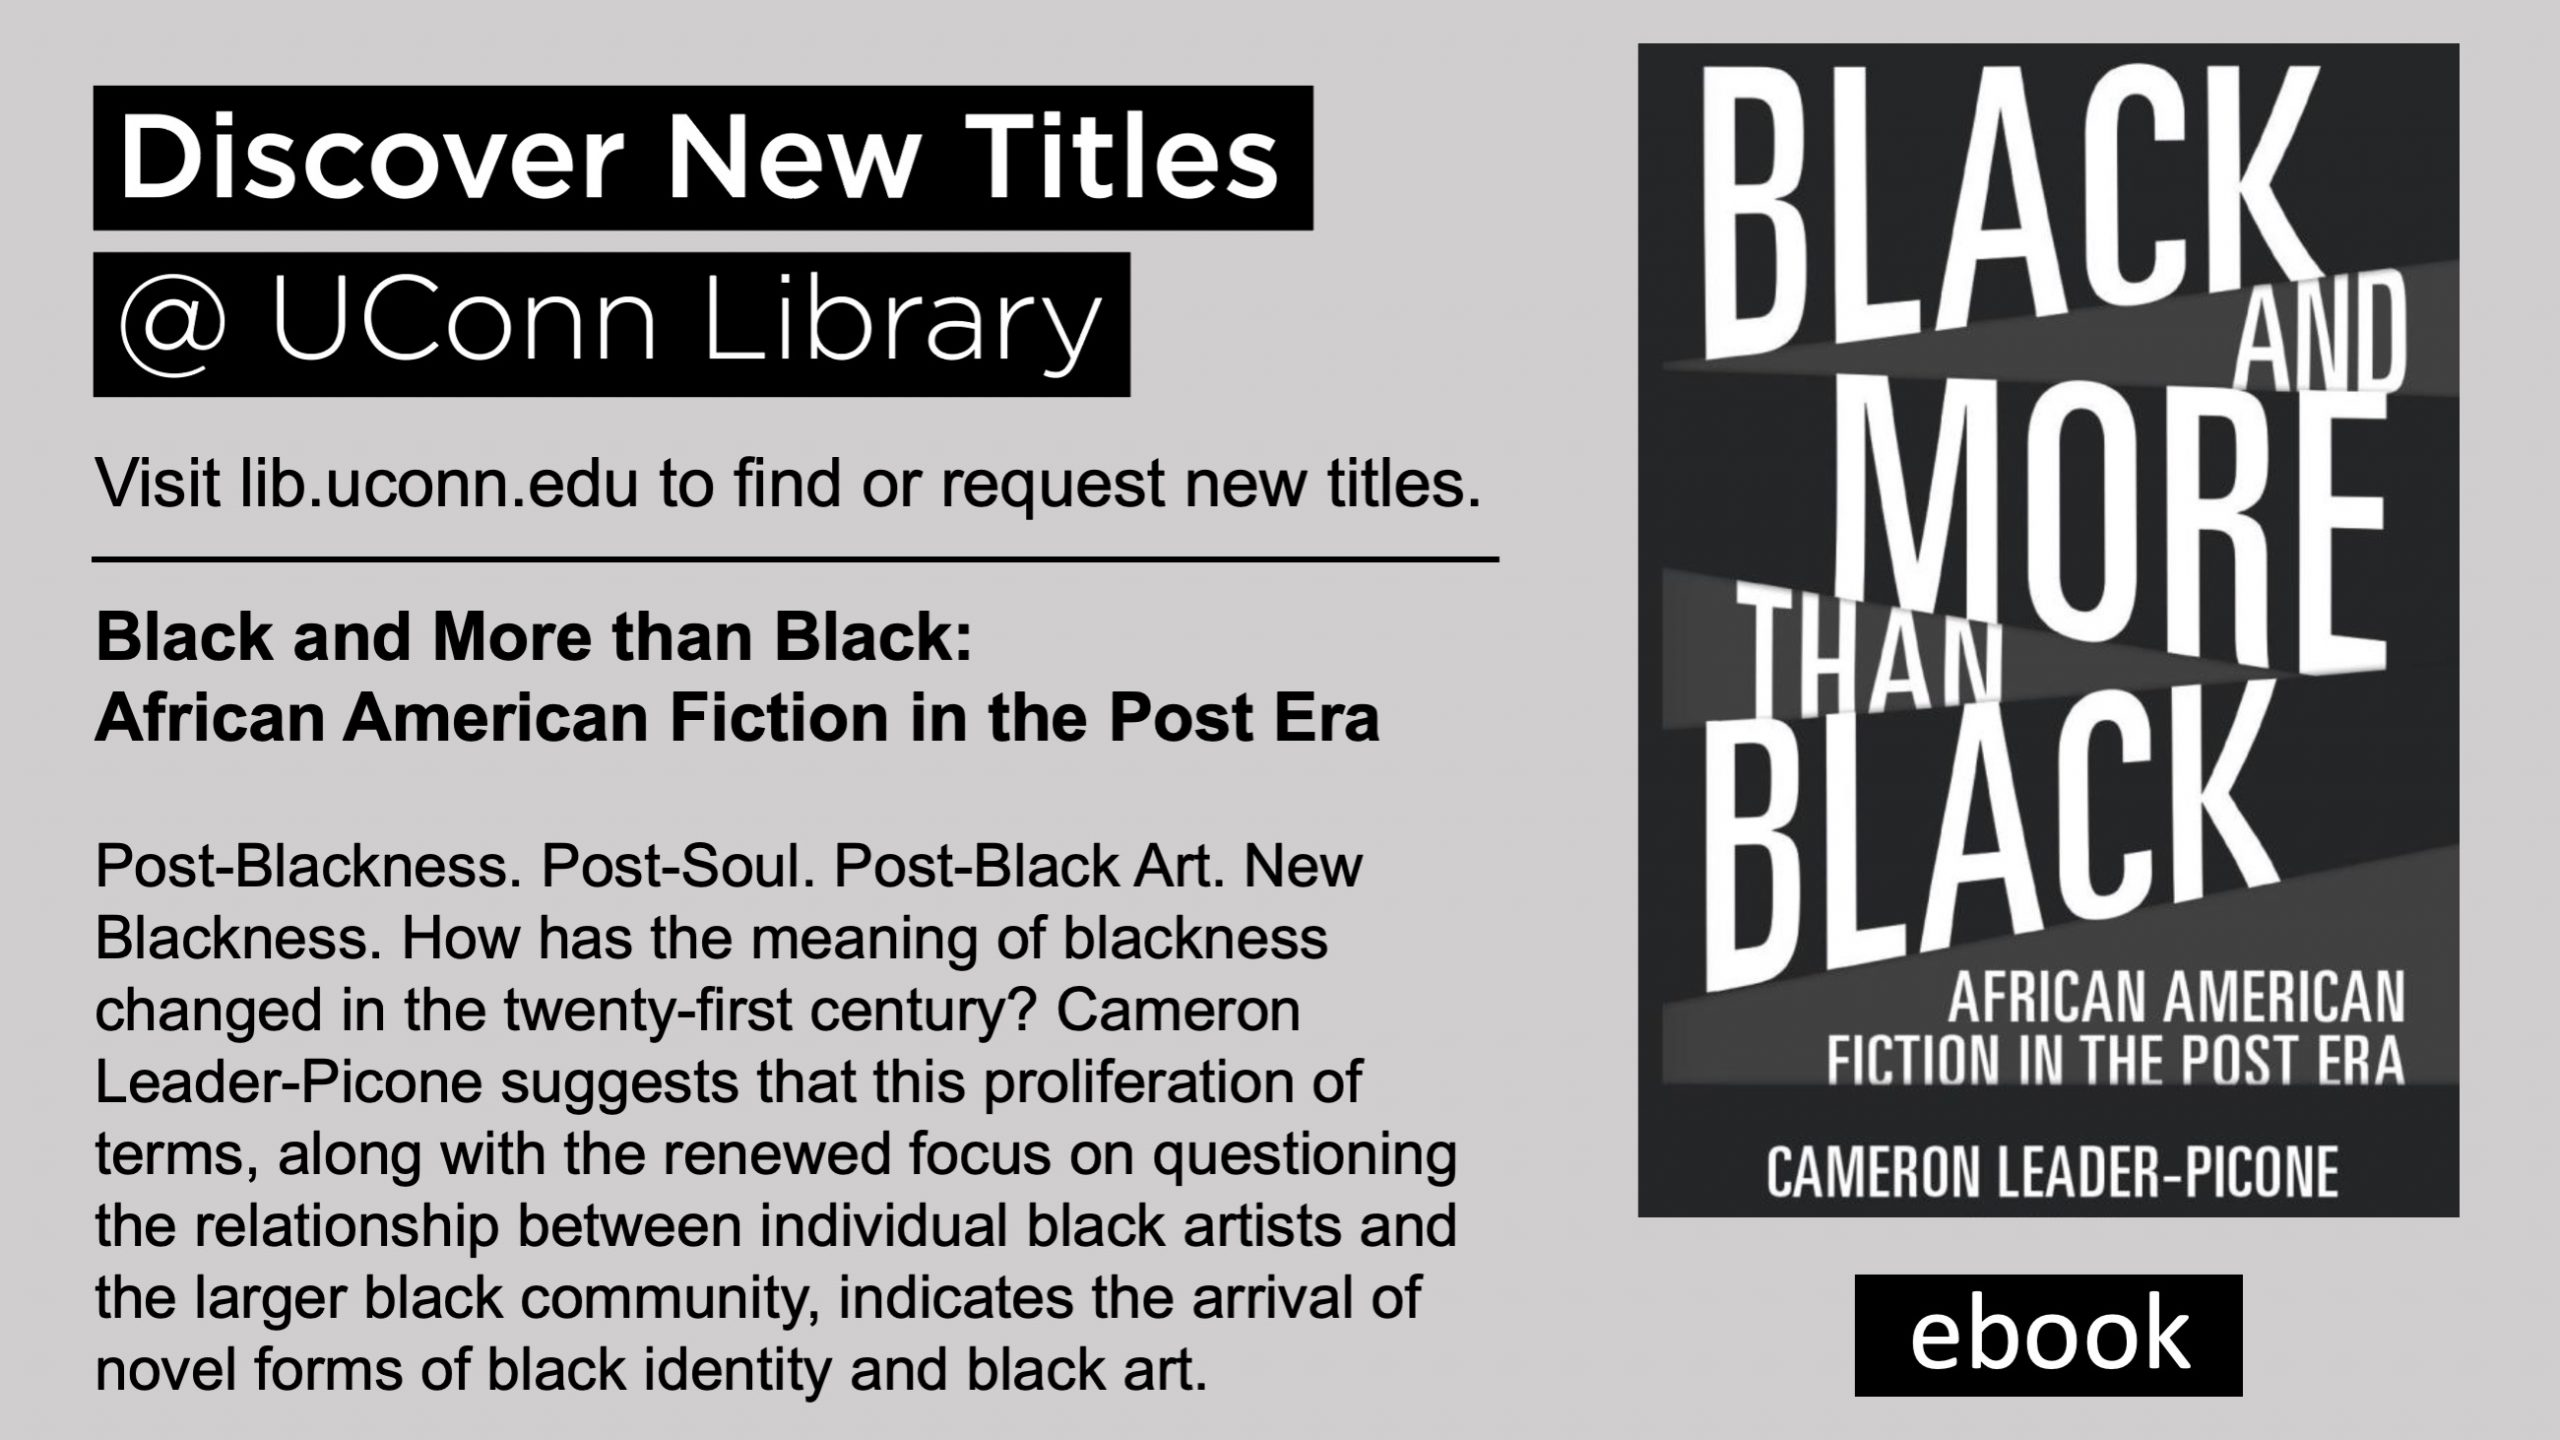 Discover New Titles @ UConn Library Visit lib.uconn.edu to find or request new titles. ebook Black and More than Black: African American Fiction in the Post Era Post-Blackness. Post-Soul. Post-Black Art. New Blackness. How has the meaning of blackness changed in the twenty-first century? Cameron Leader-Picone suggests that this proliferation of terms, along with the renewed focus on questioning the relationship between individual black artists and the larger black community, indicates the arrival of novel forms of black identity and black art.